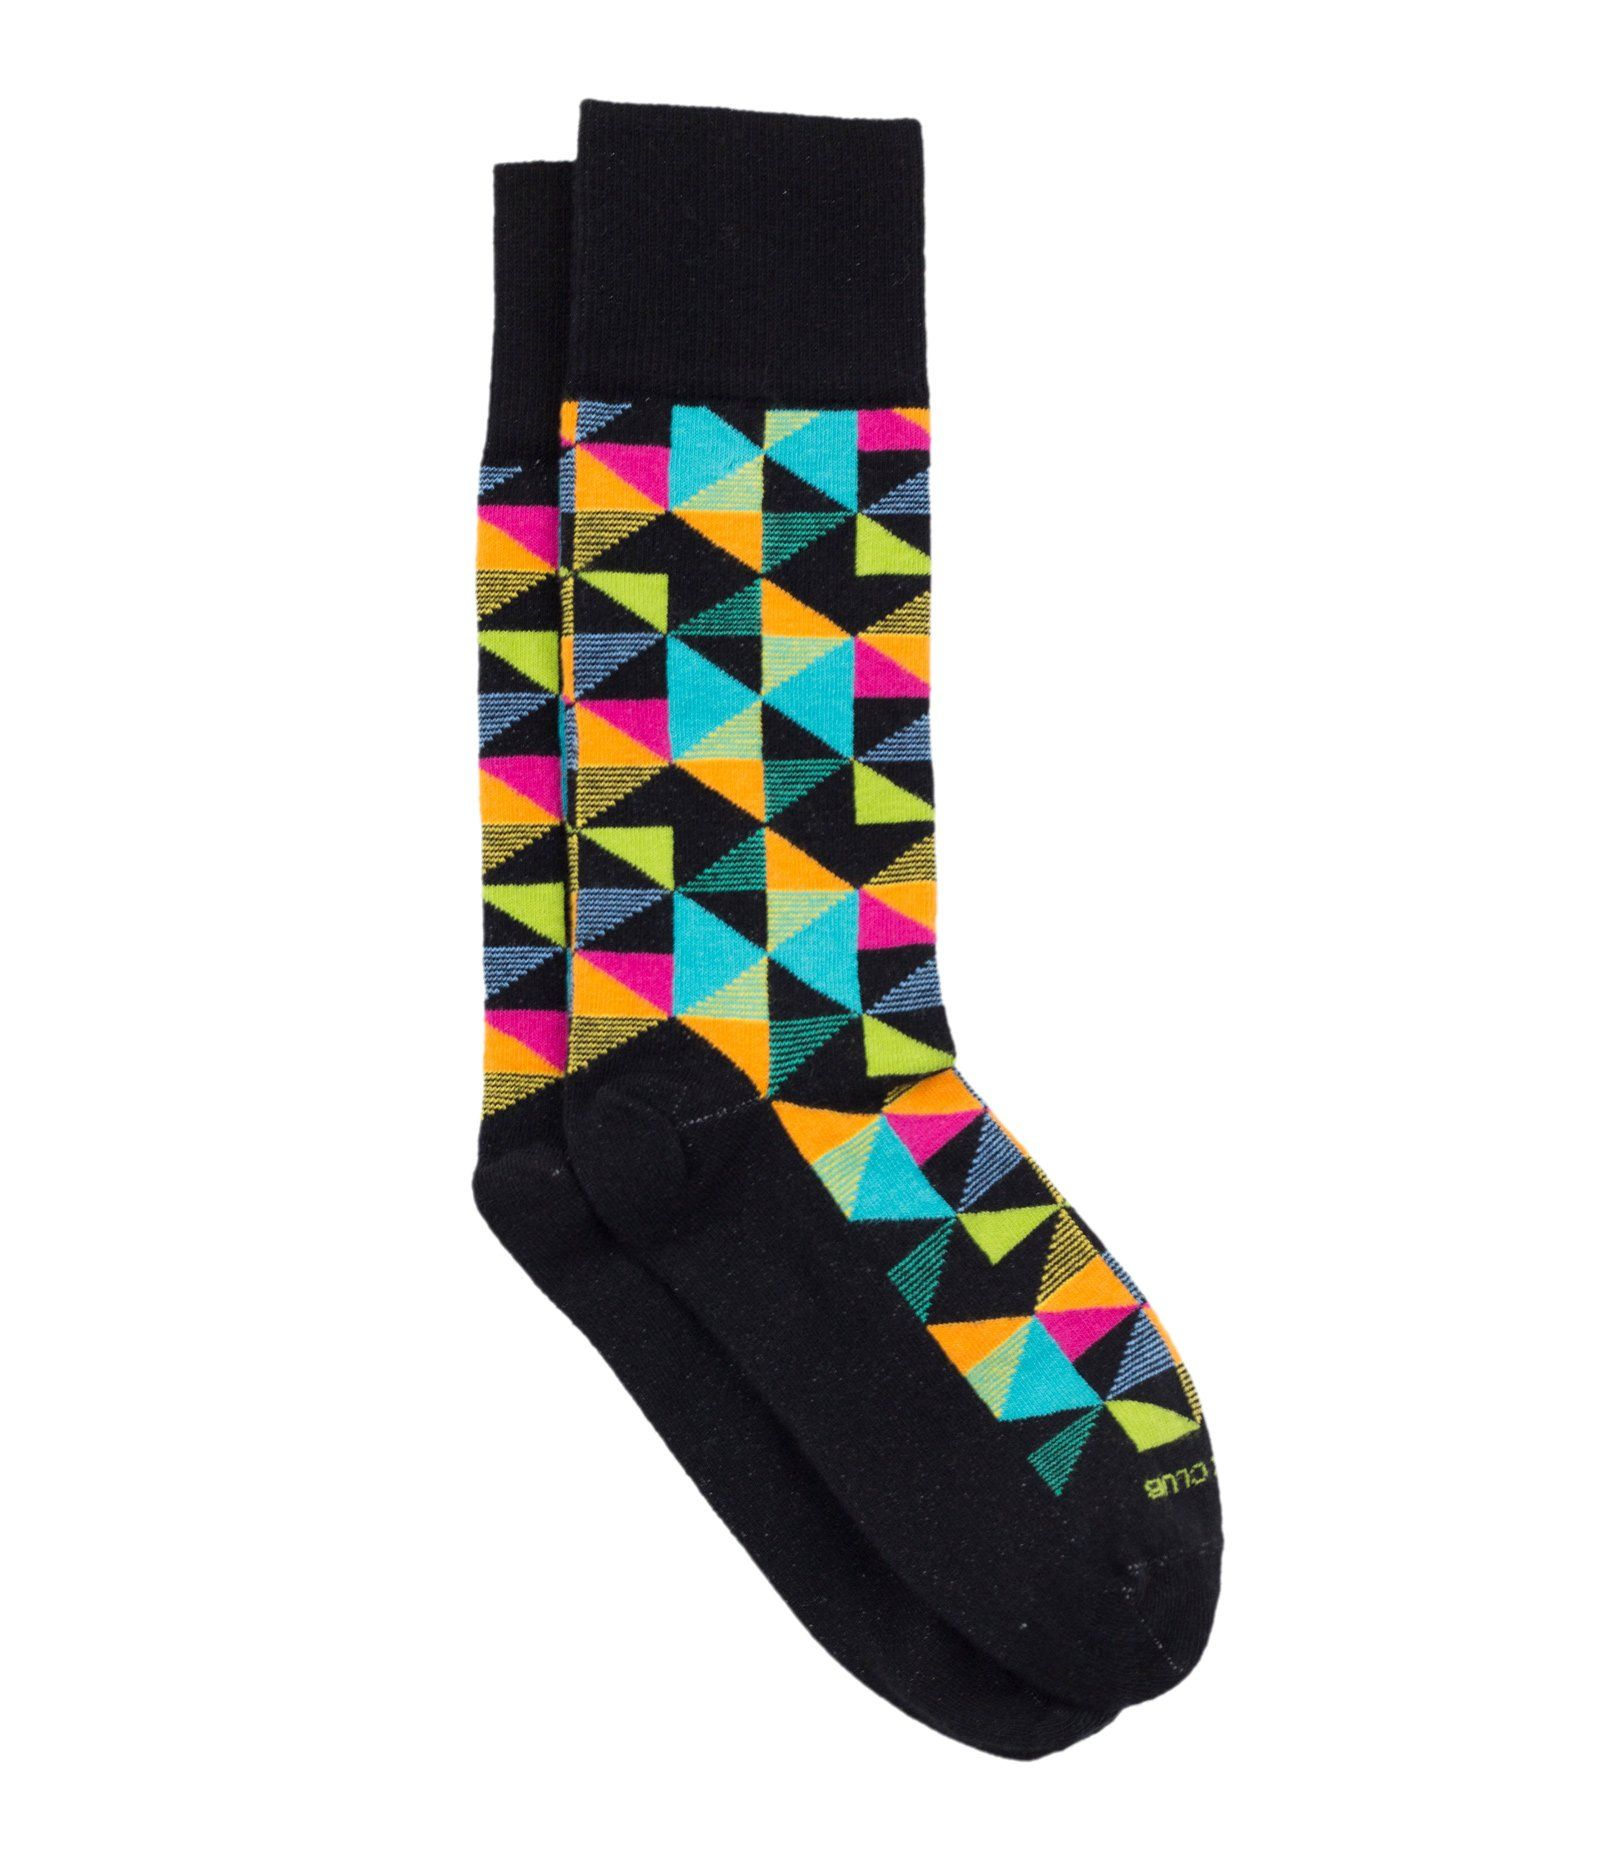 The Pinwheel - Black - Sock Club Store